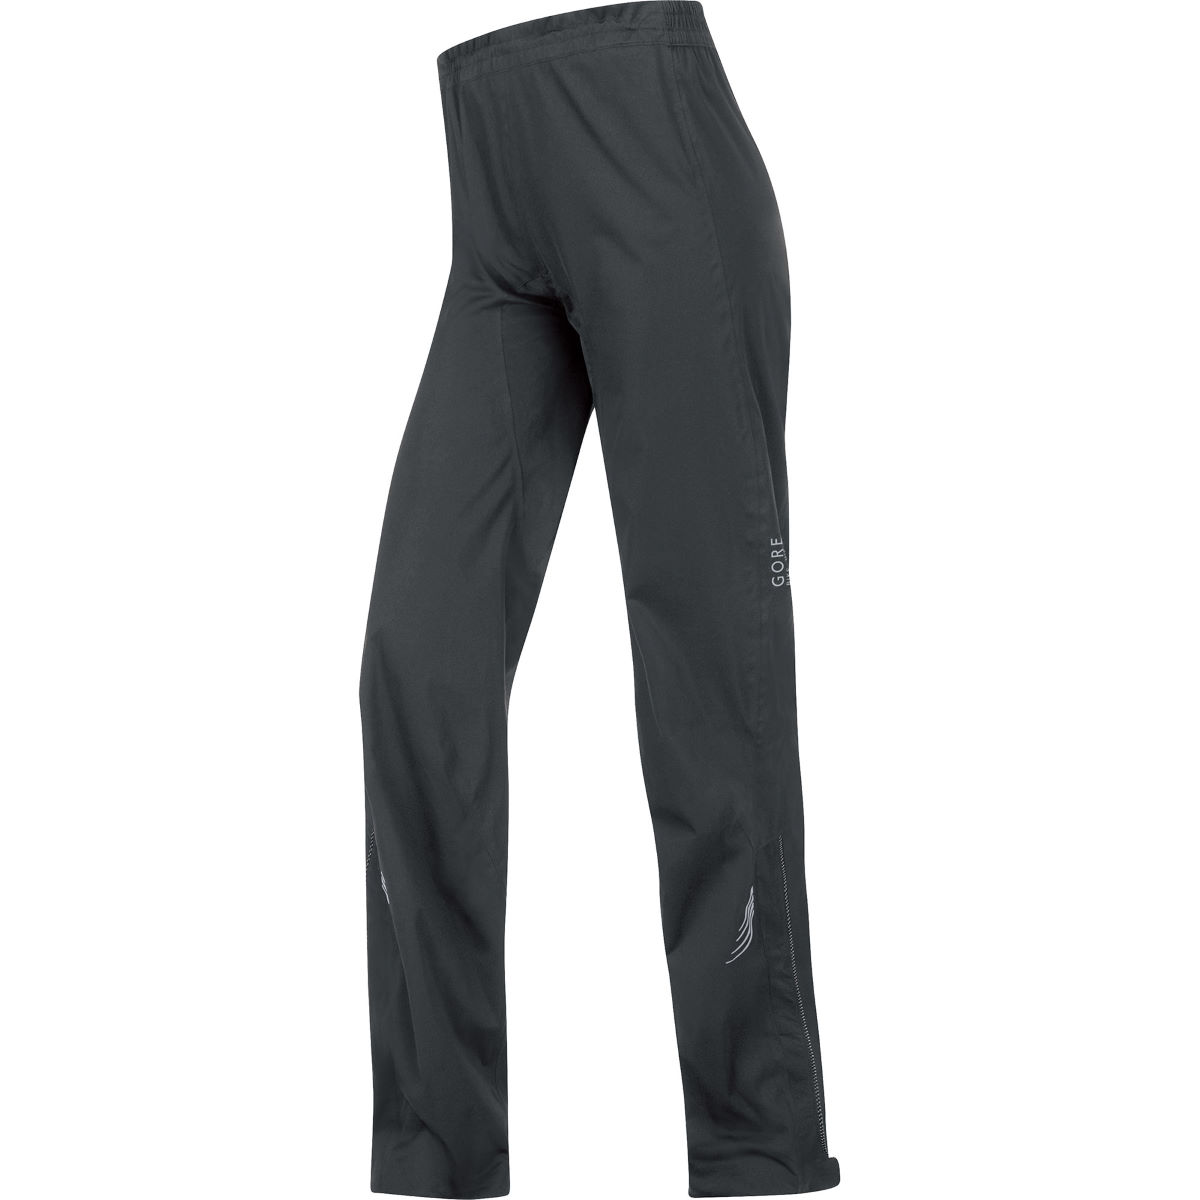 Gore Bike Wear Womens Element GoreTex Active Shell Pants   Waterproof Cycling Trousers